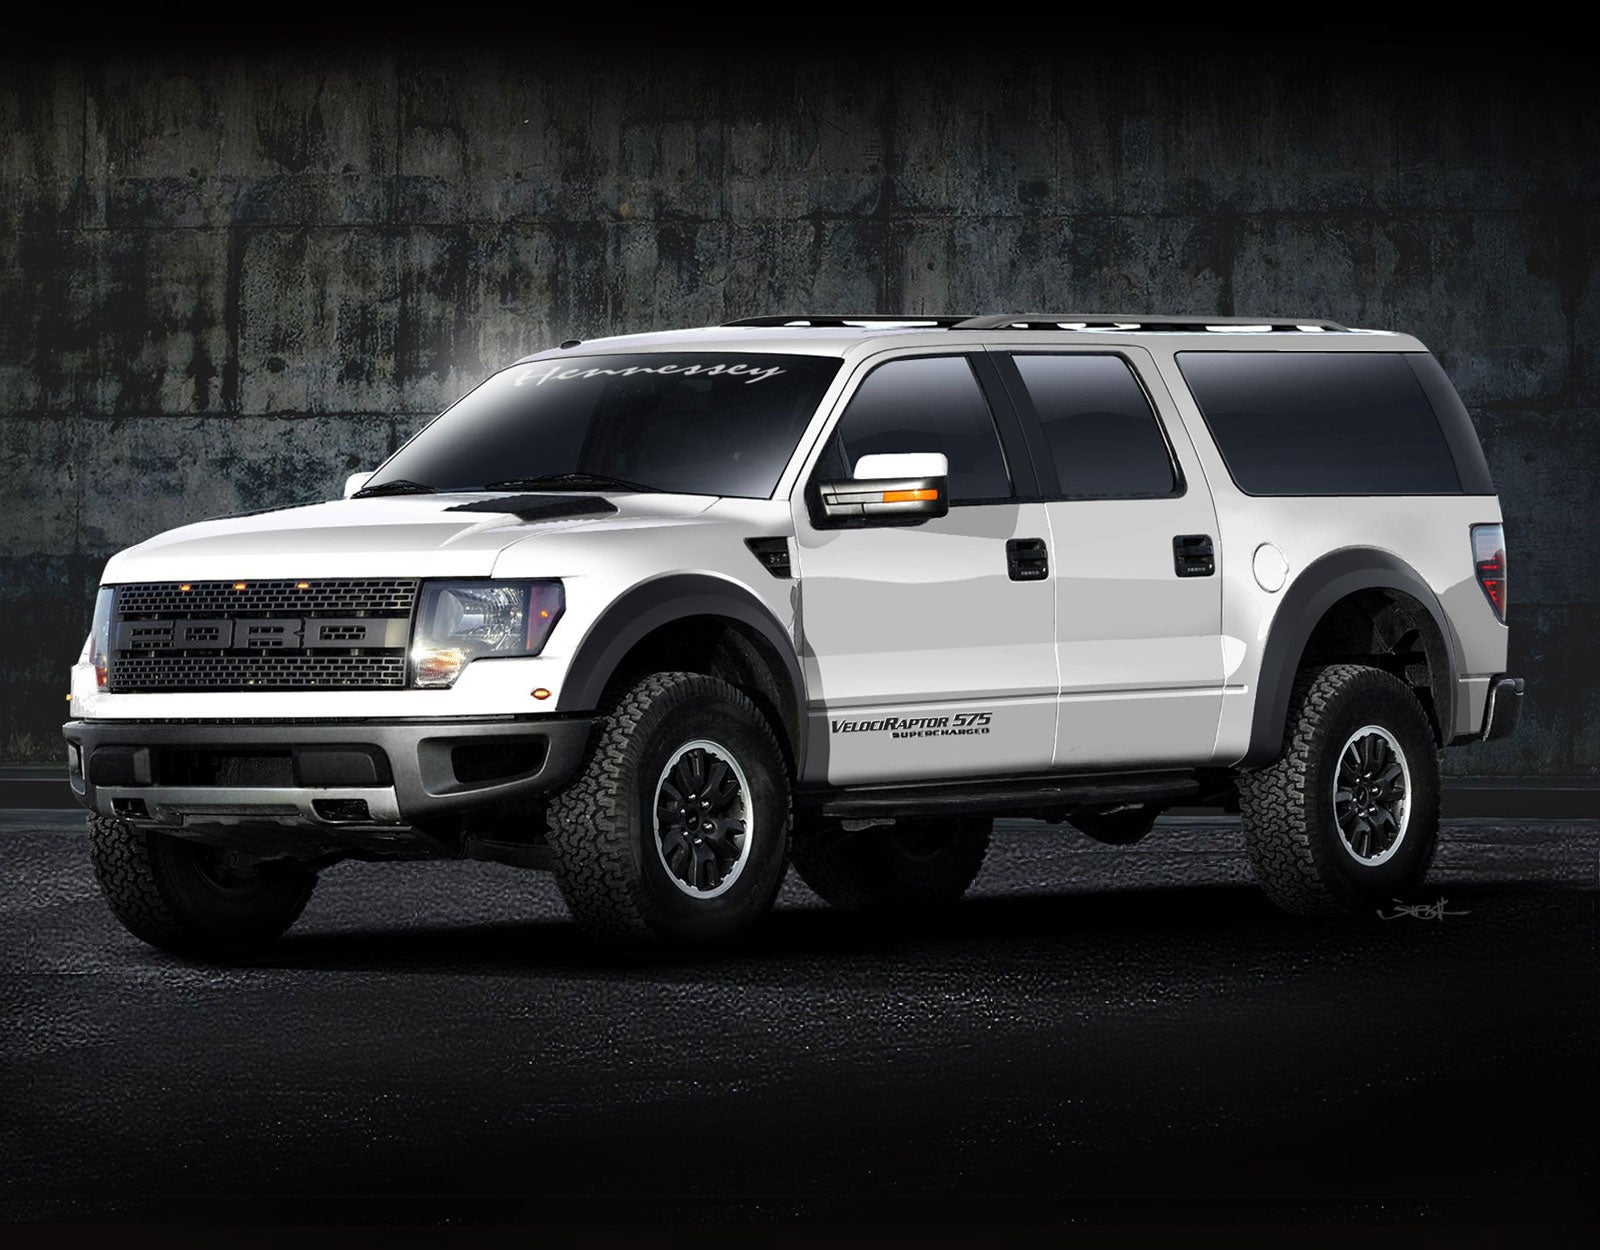 Hennessey's Armored, Supercharged Ford Raptor SUV